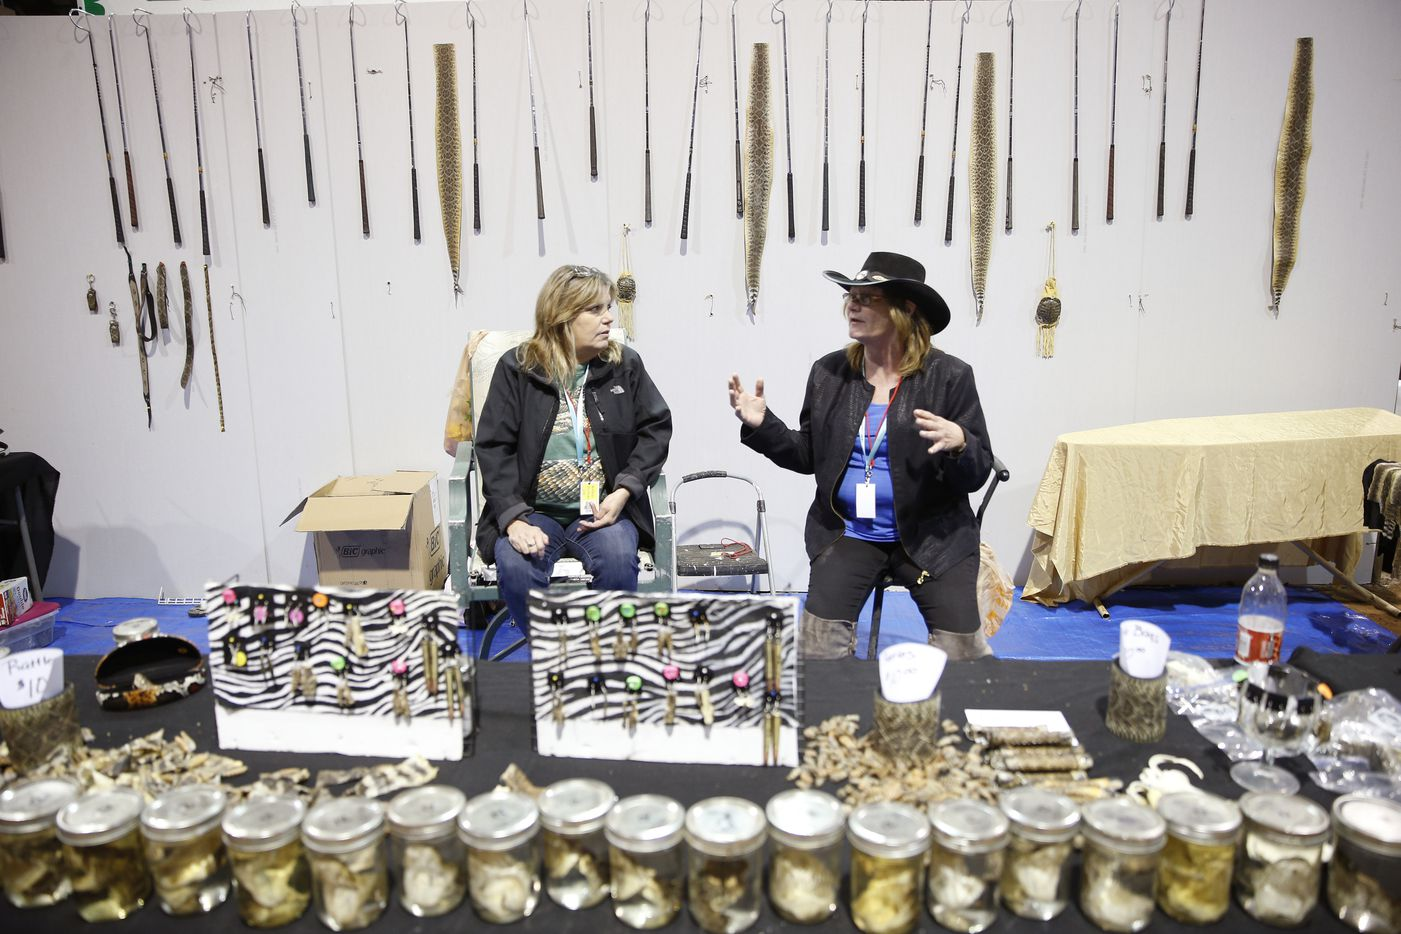 Lisa Cochran (left) and Janna Lasly talk while selling rattlesnake items  at their shop, Reptiles Unlimited, during the Sweetwater Rattlesnake Roundup. (Nathan Hunsinger/The Dallas Morning News)